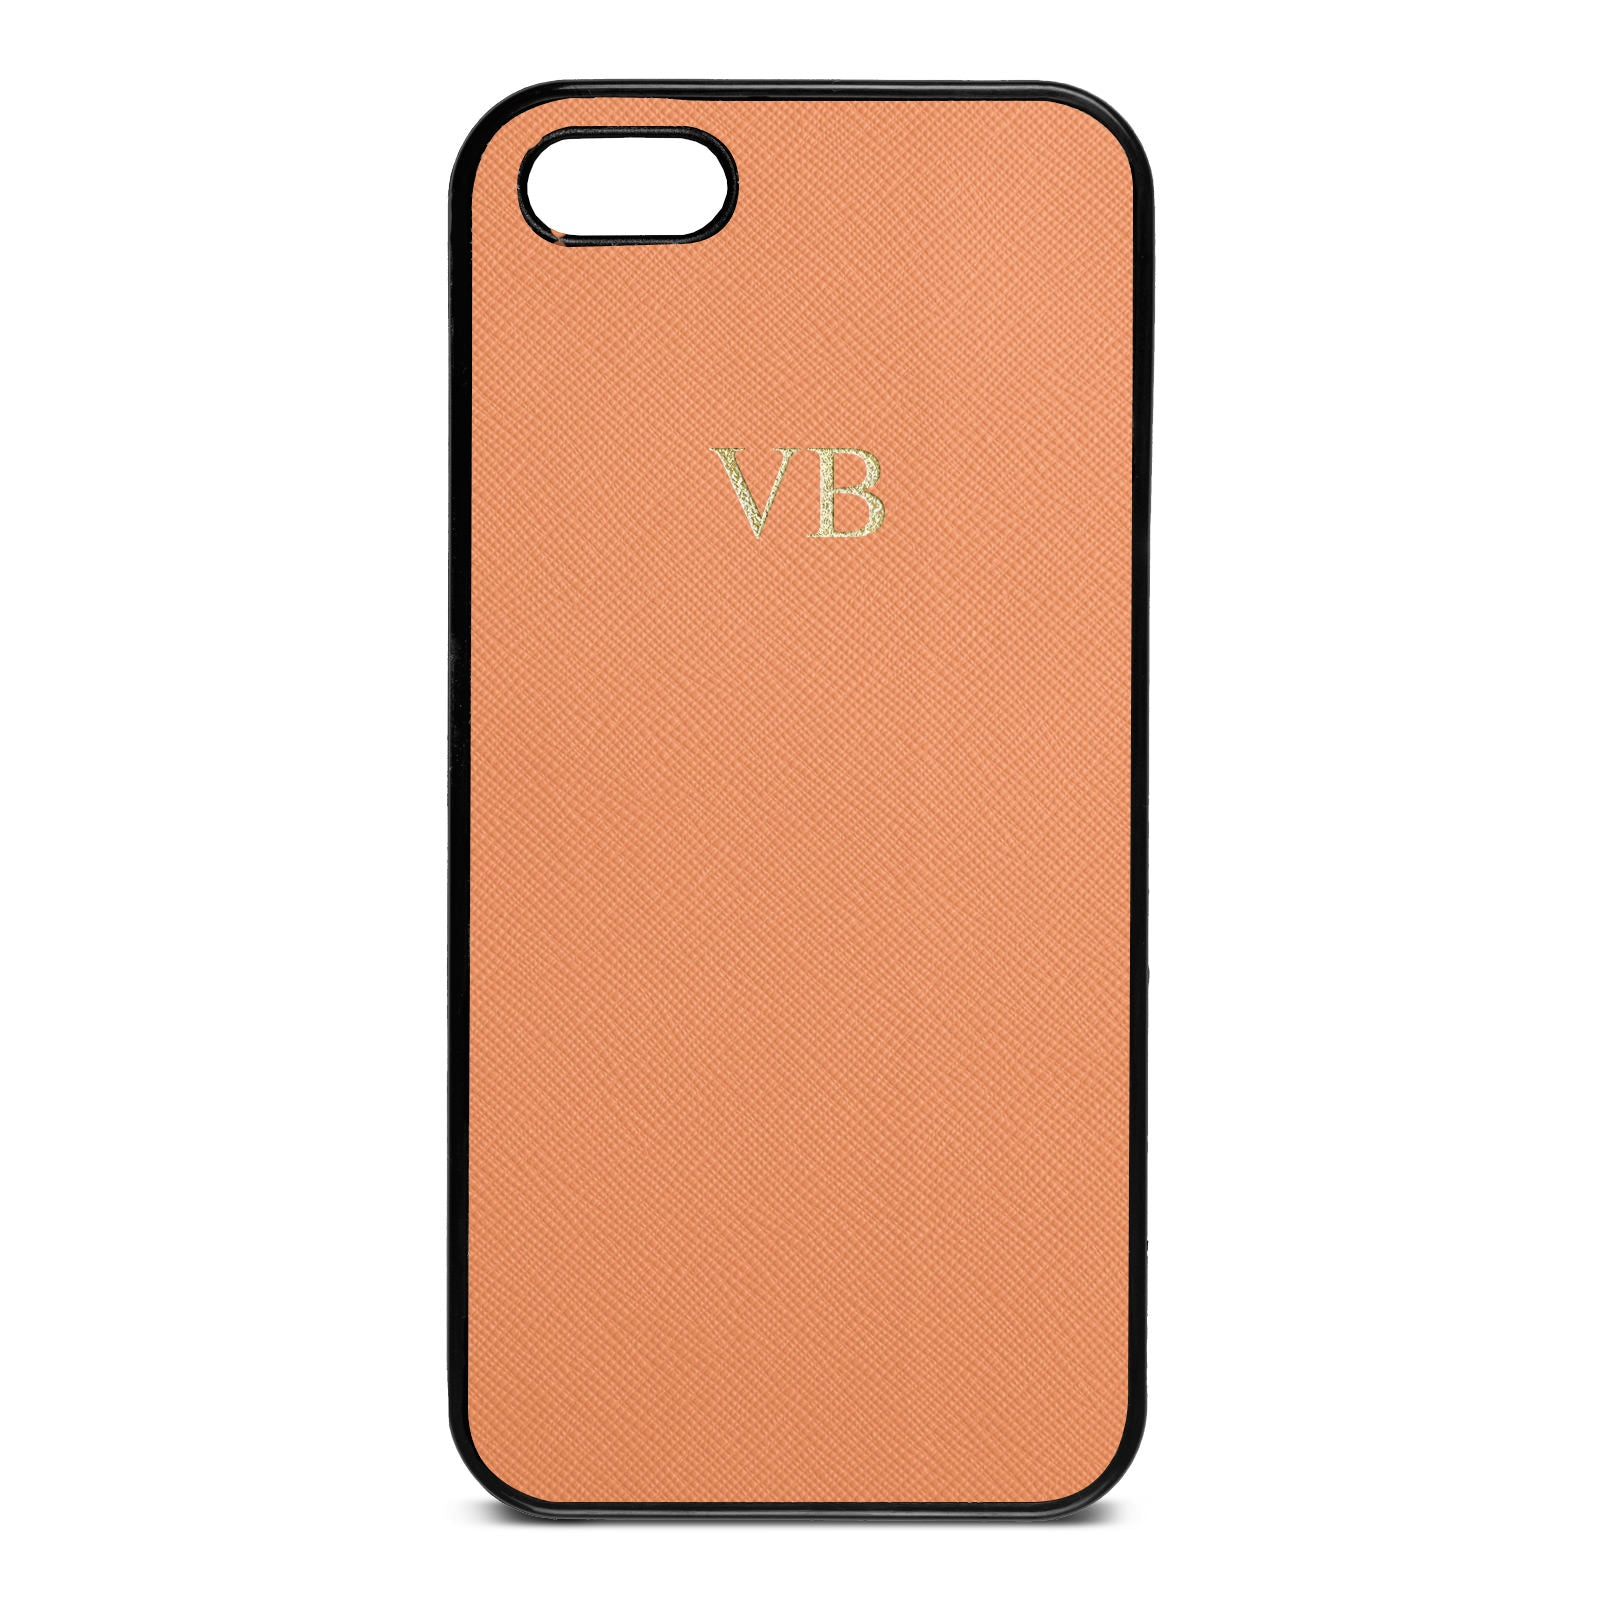 Personalised Orange Saffiano Leather iPhone 5 Case